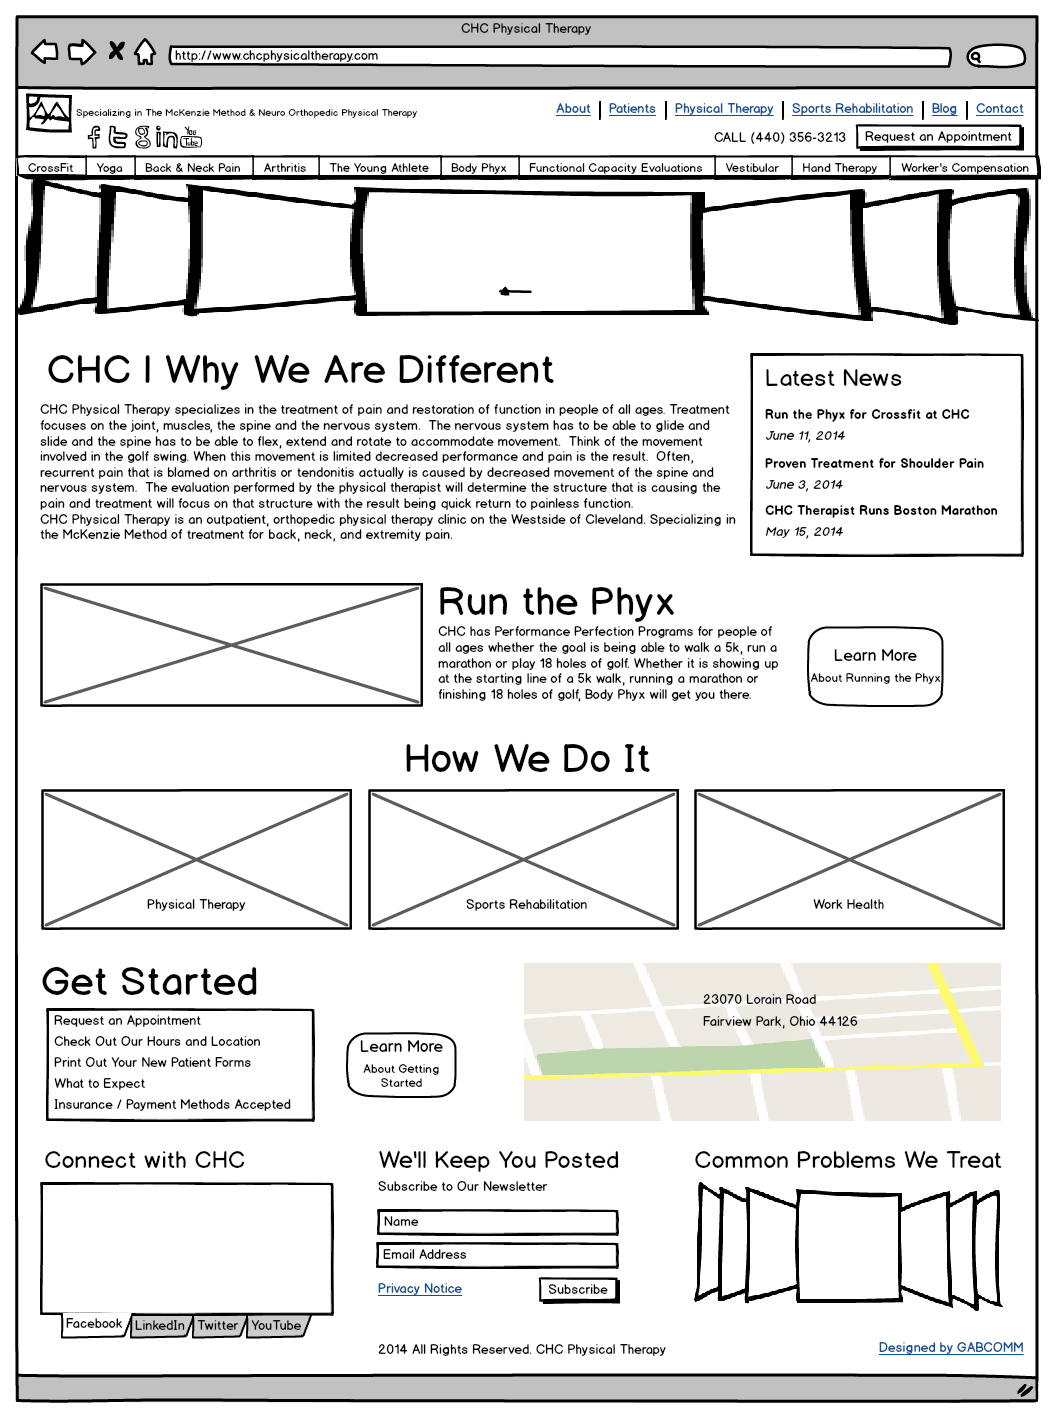 Balsamiq mockup for CHC Version 2 After Client Meeting